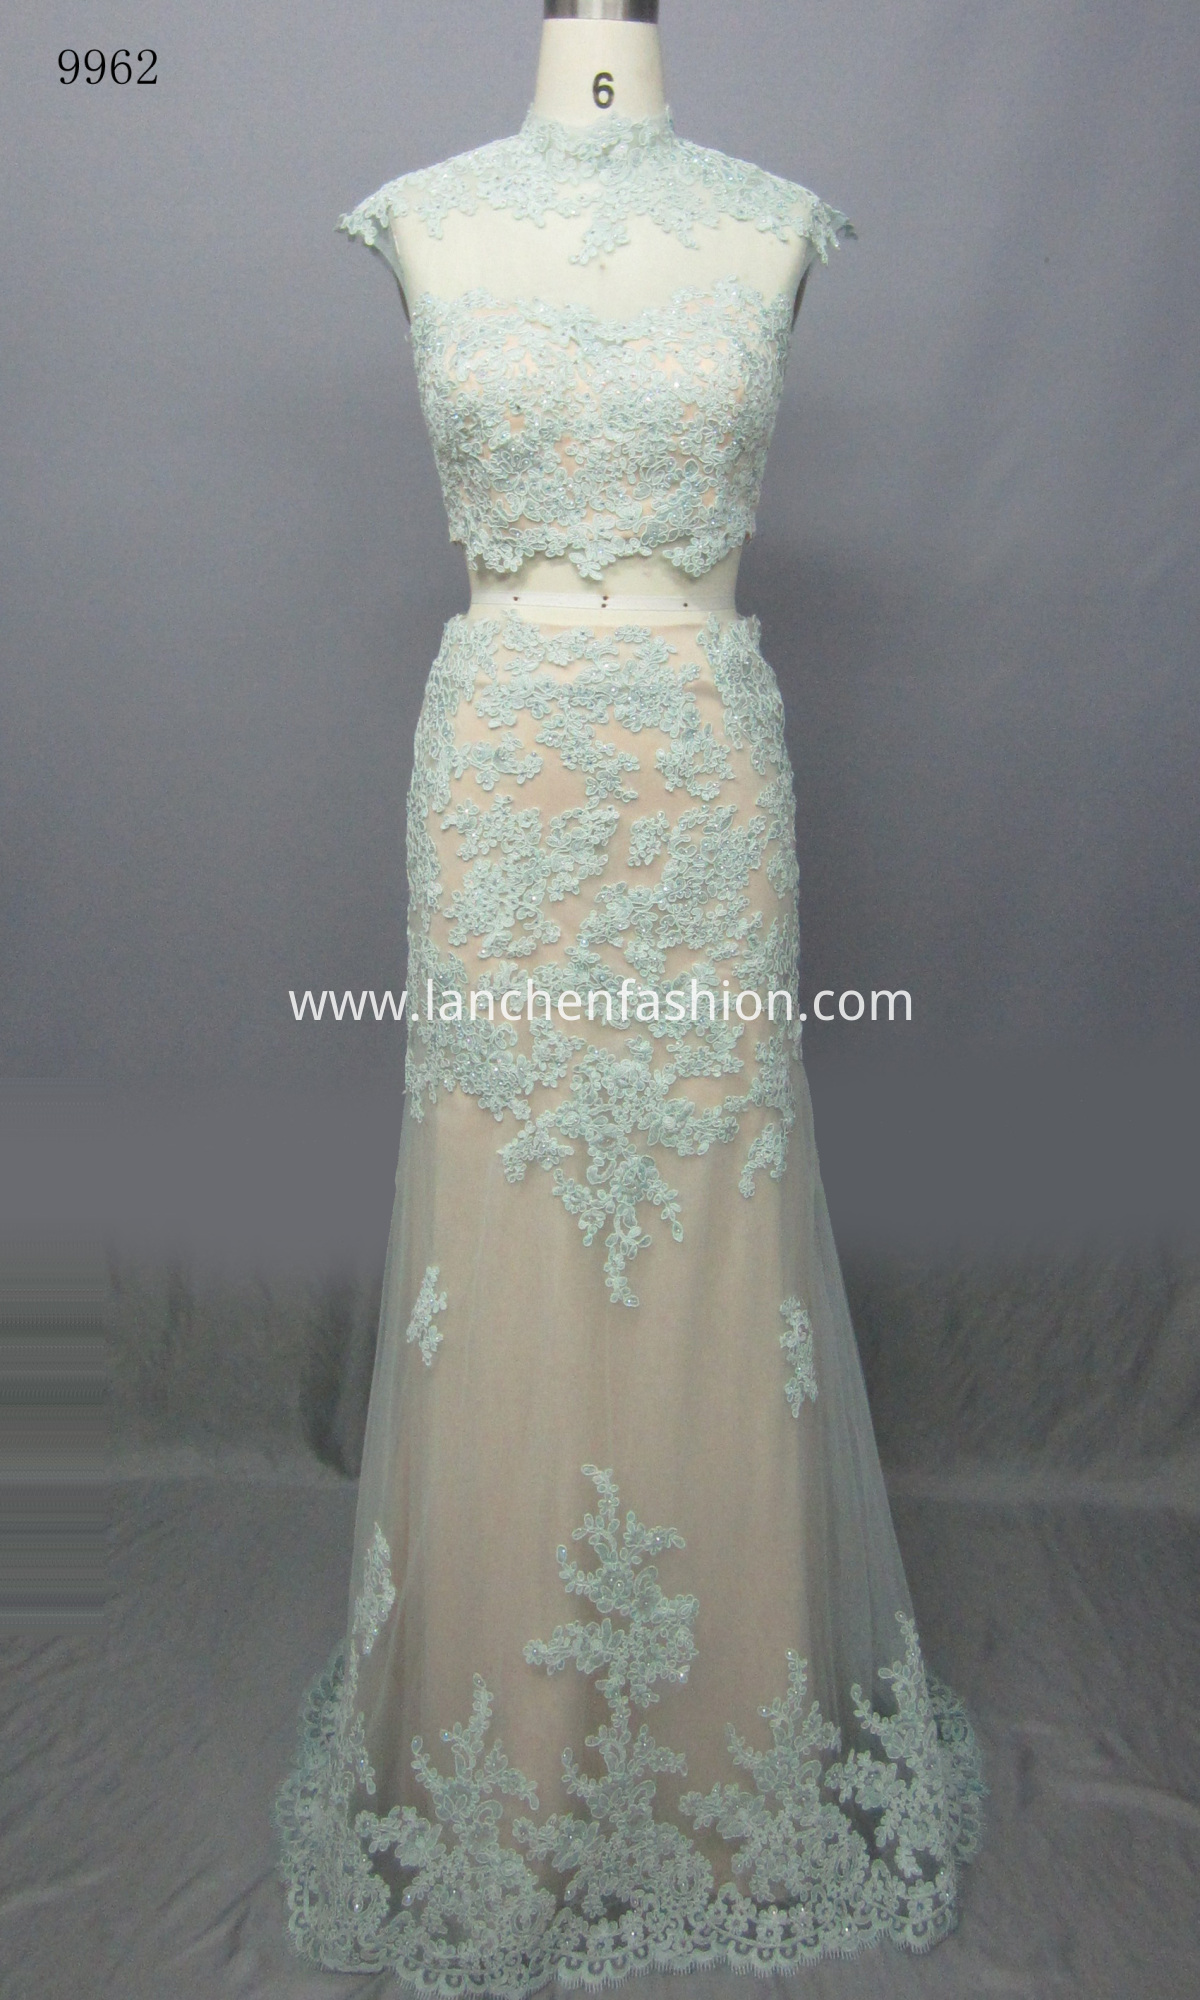 Cocktail Lace Prom Dresses